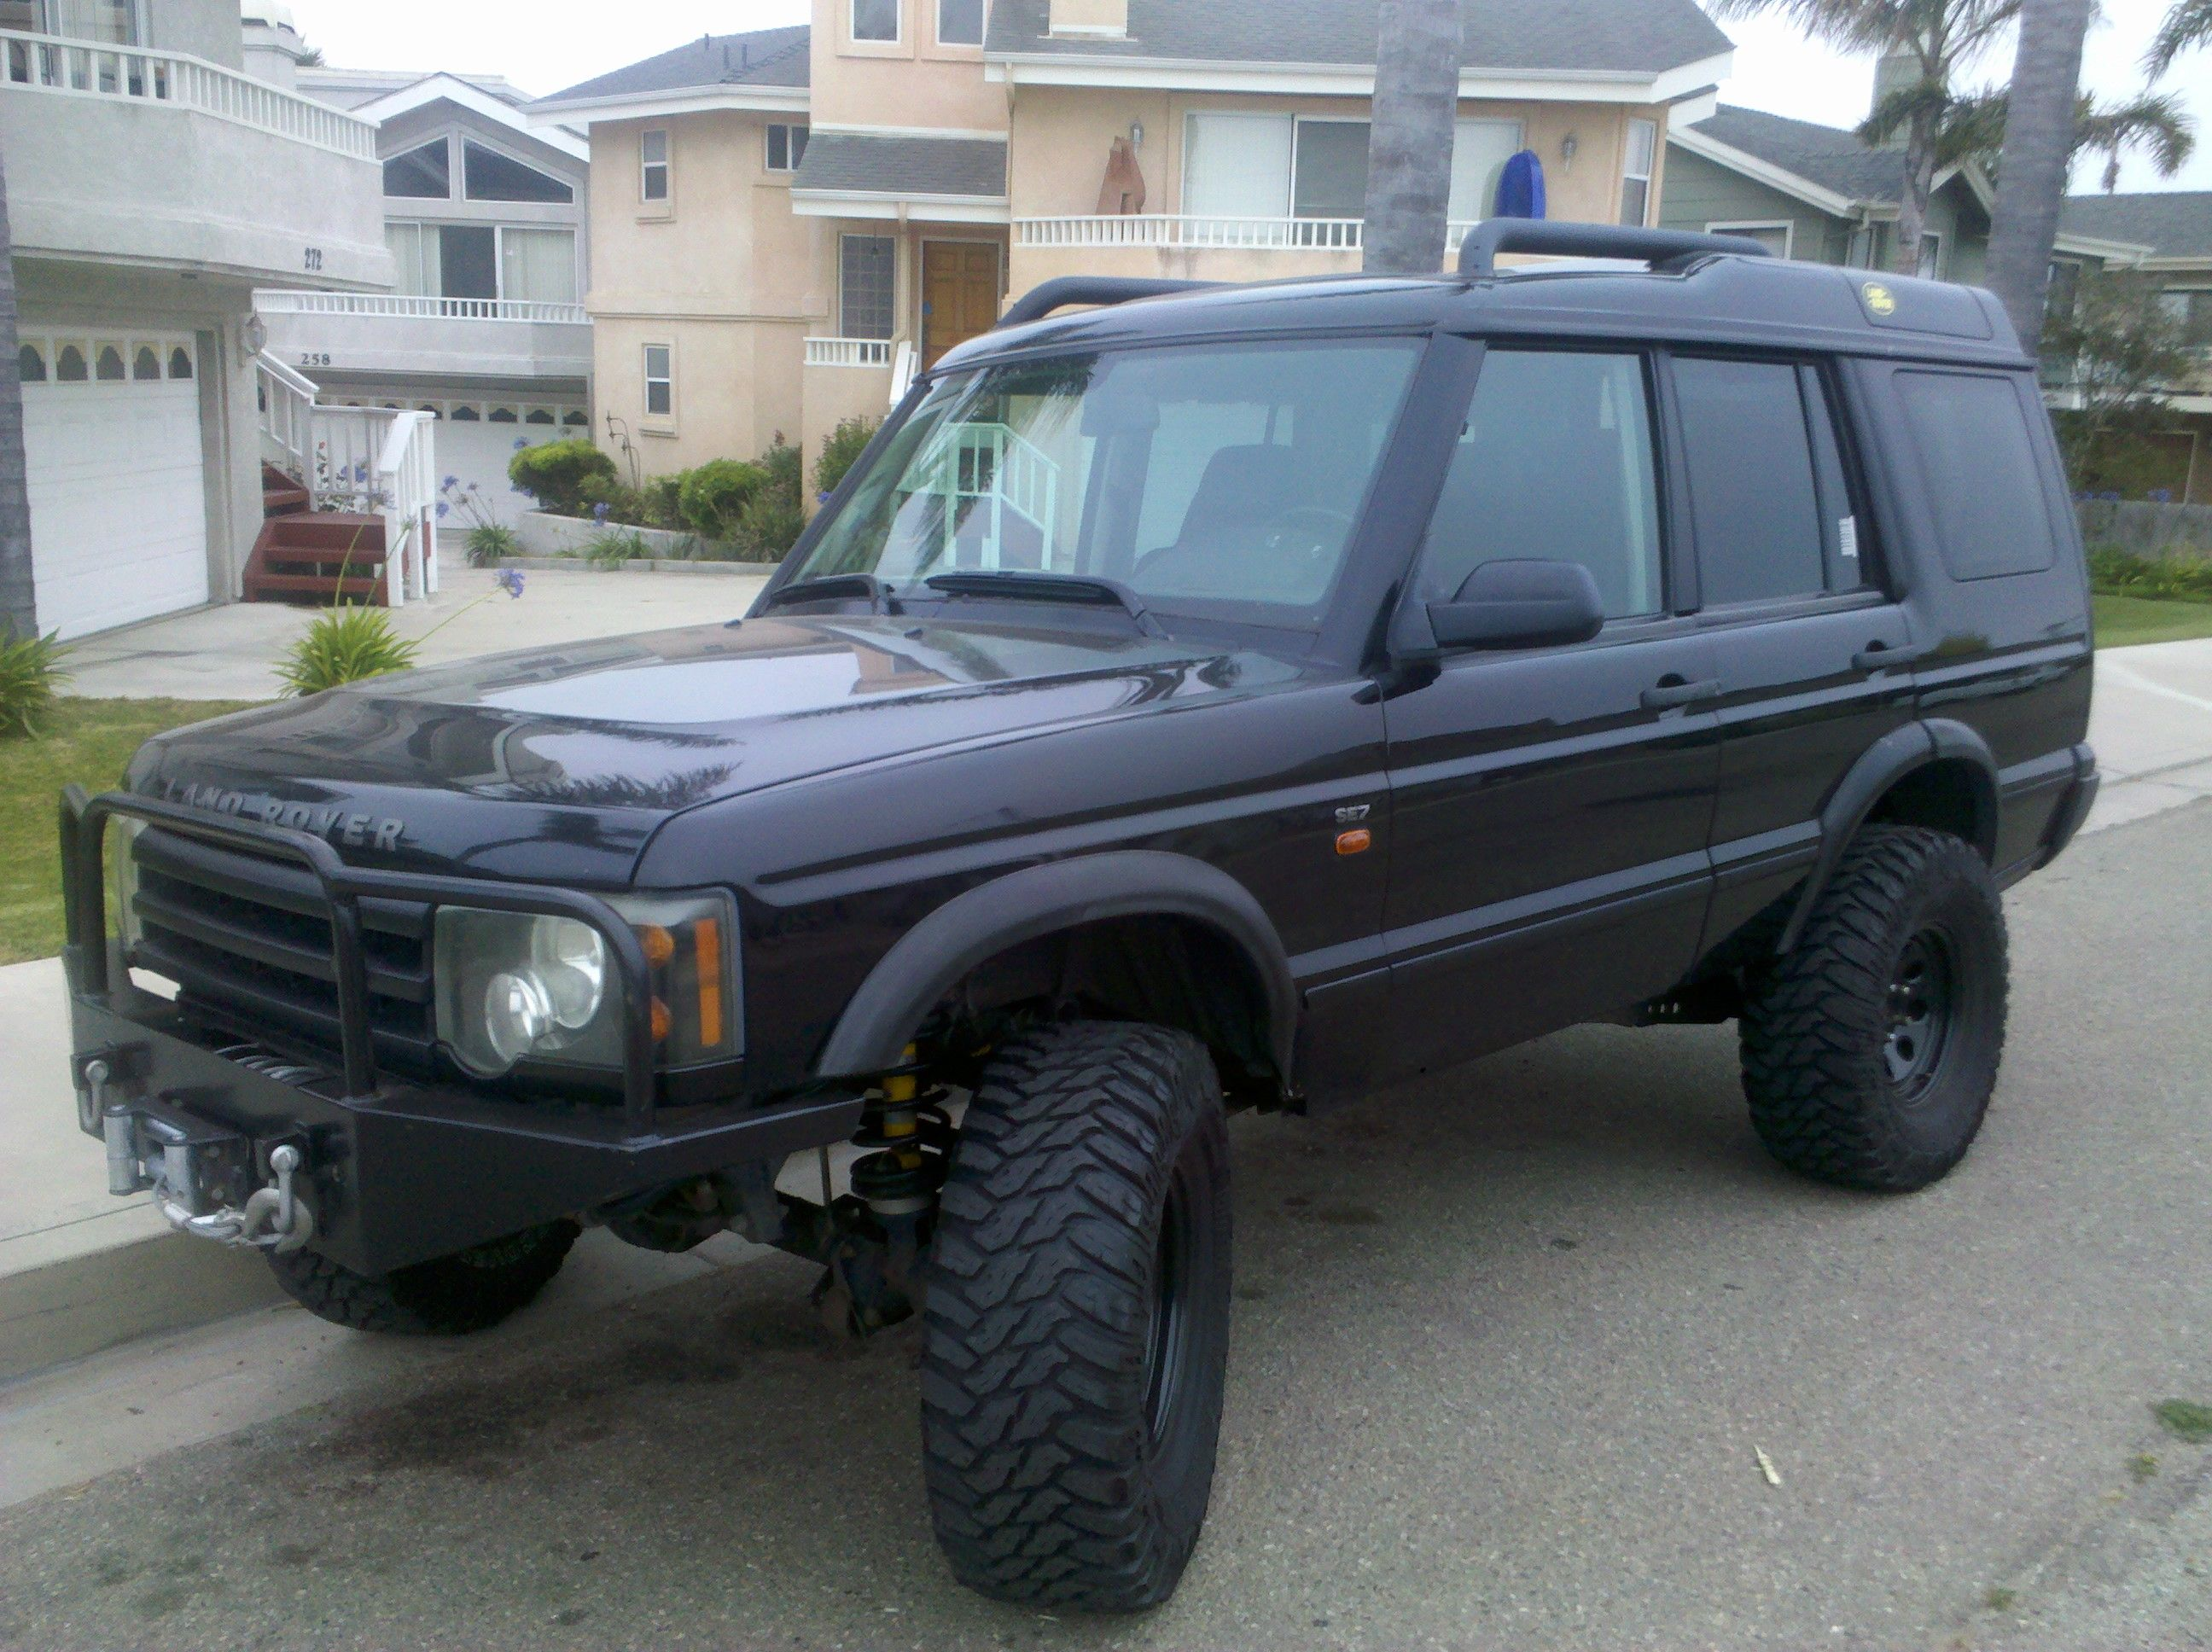 2004 Land Rover Discovery 2 with 6 inch lift custom bumpers rims